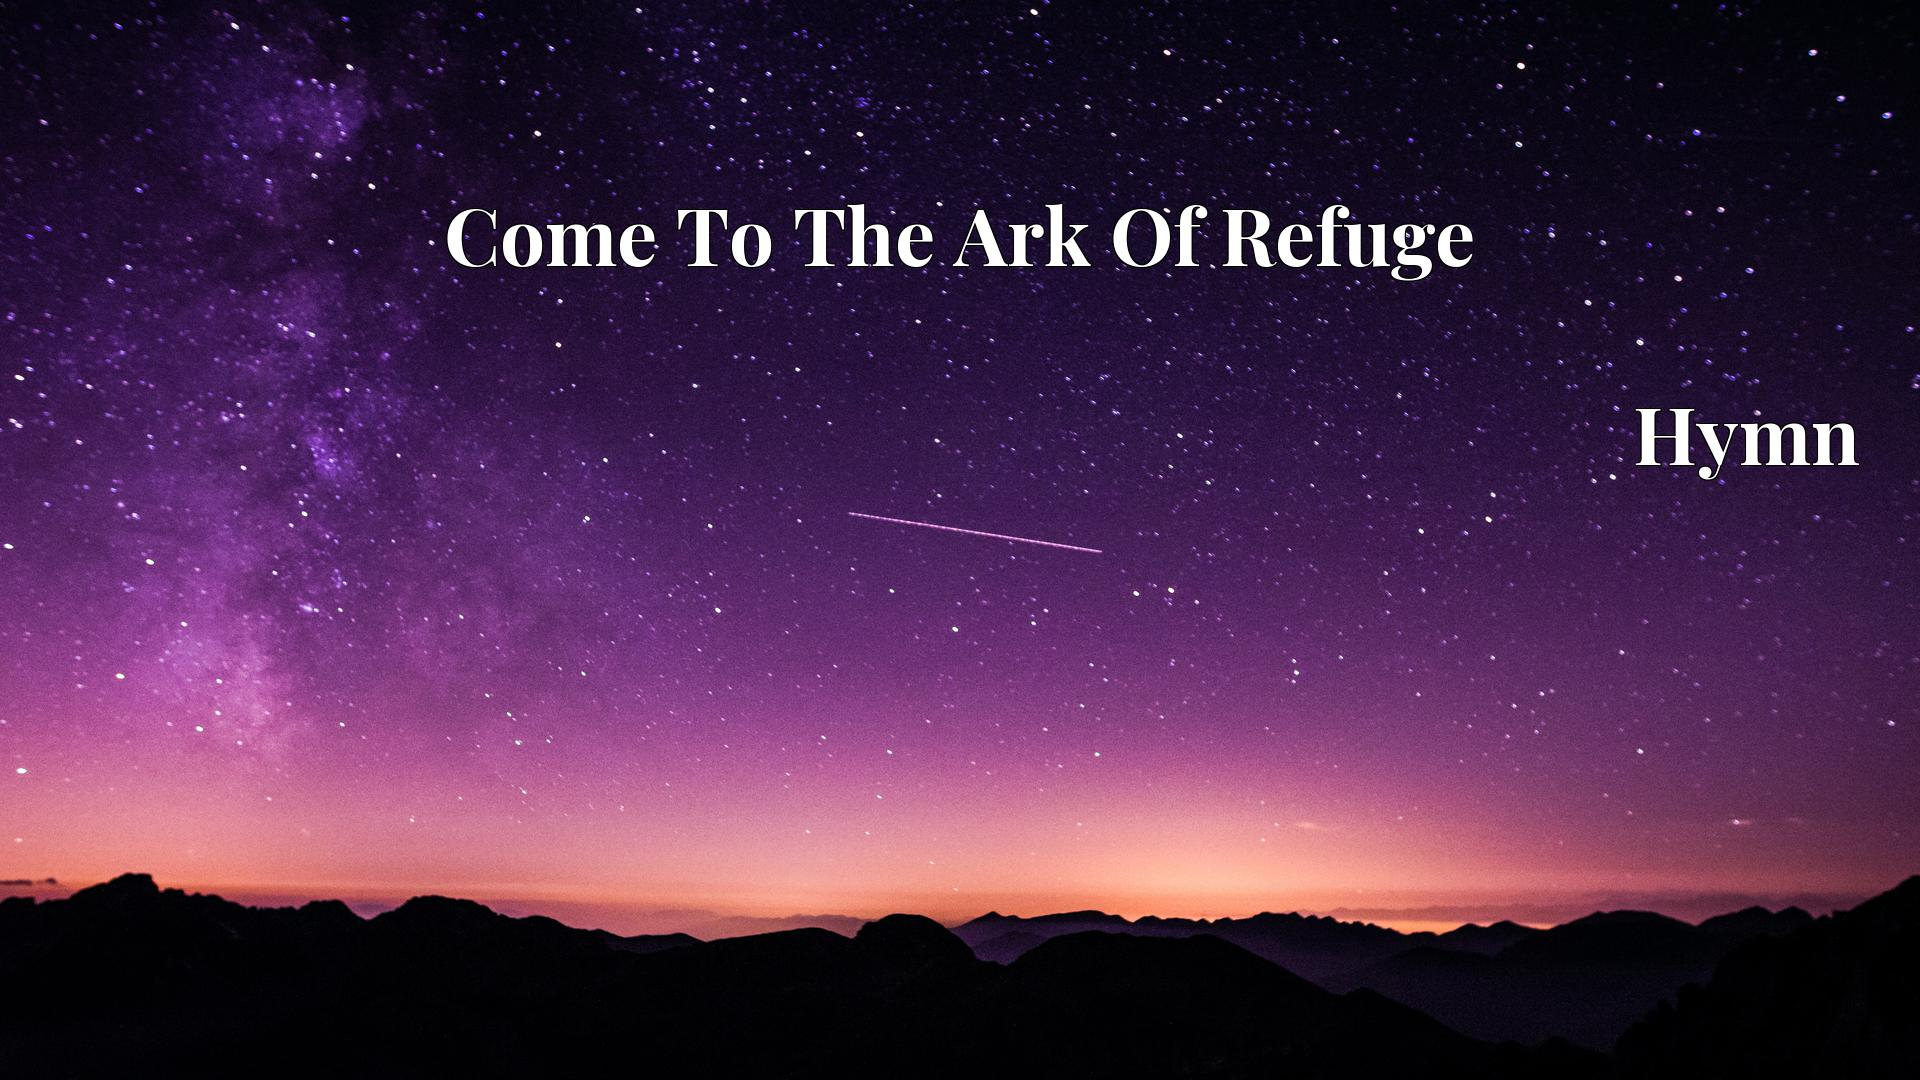 Come To The Ark Of Refuge Hymn Lyric